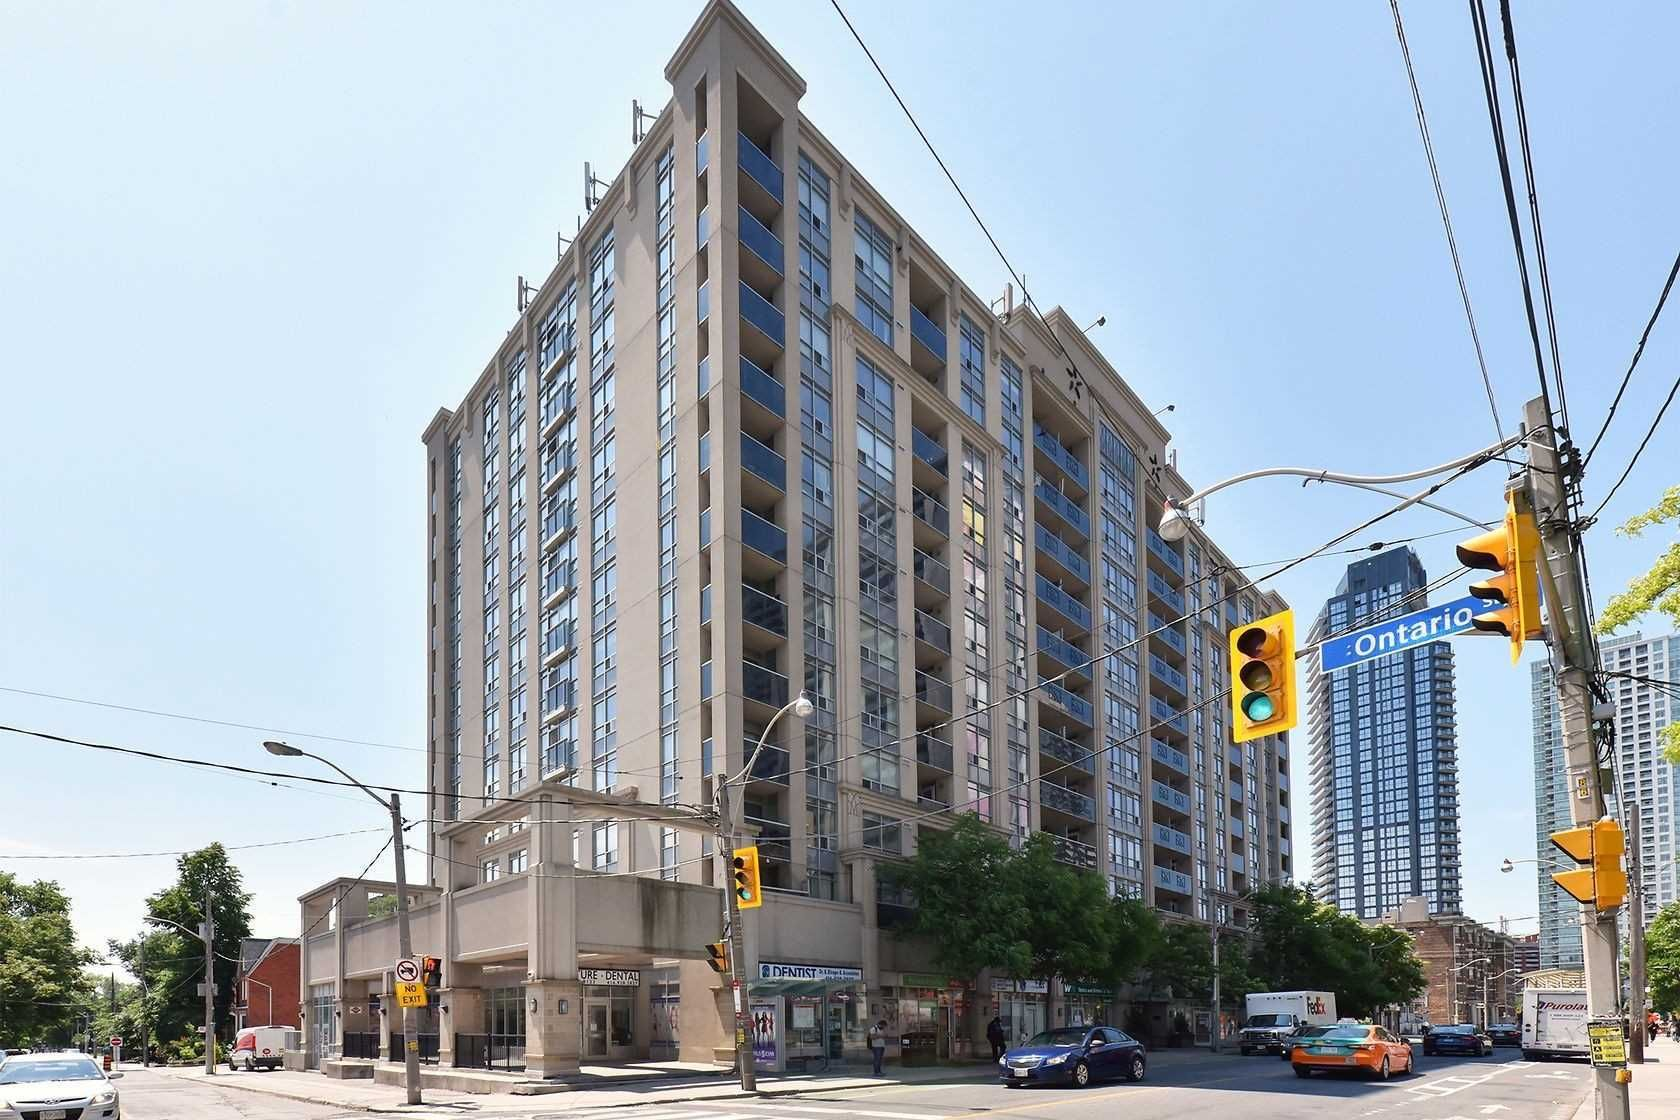 225 Wellesley St E, unit 704 for sale in Cabbagetown - image #1